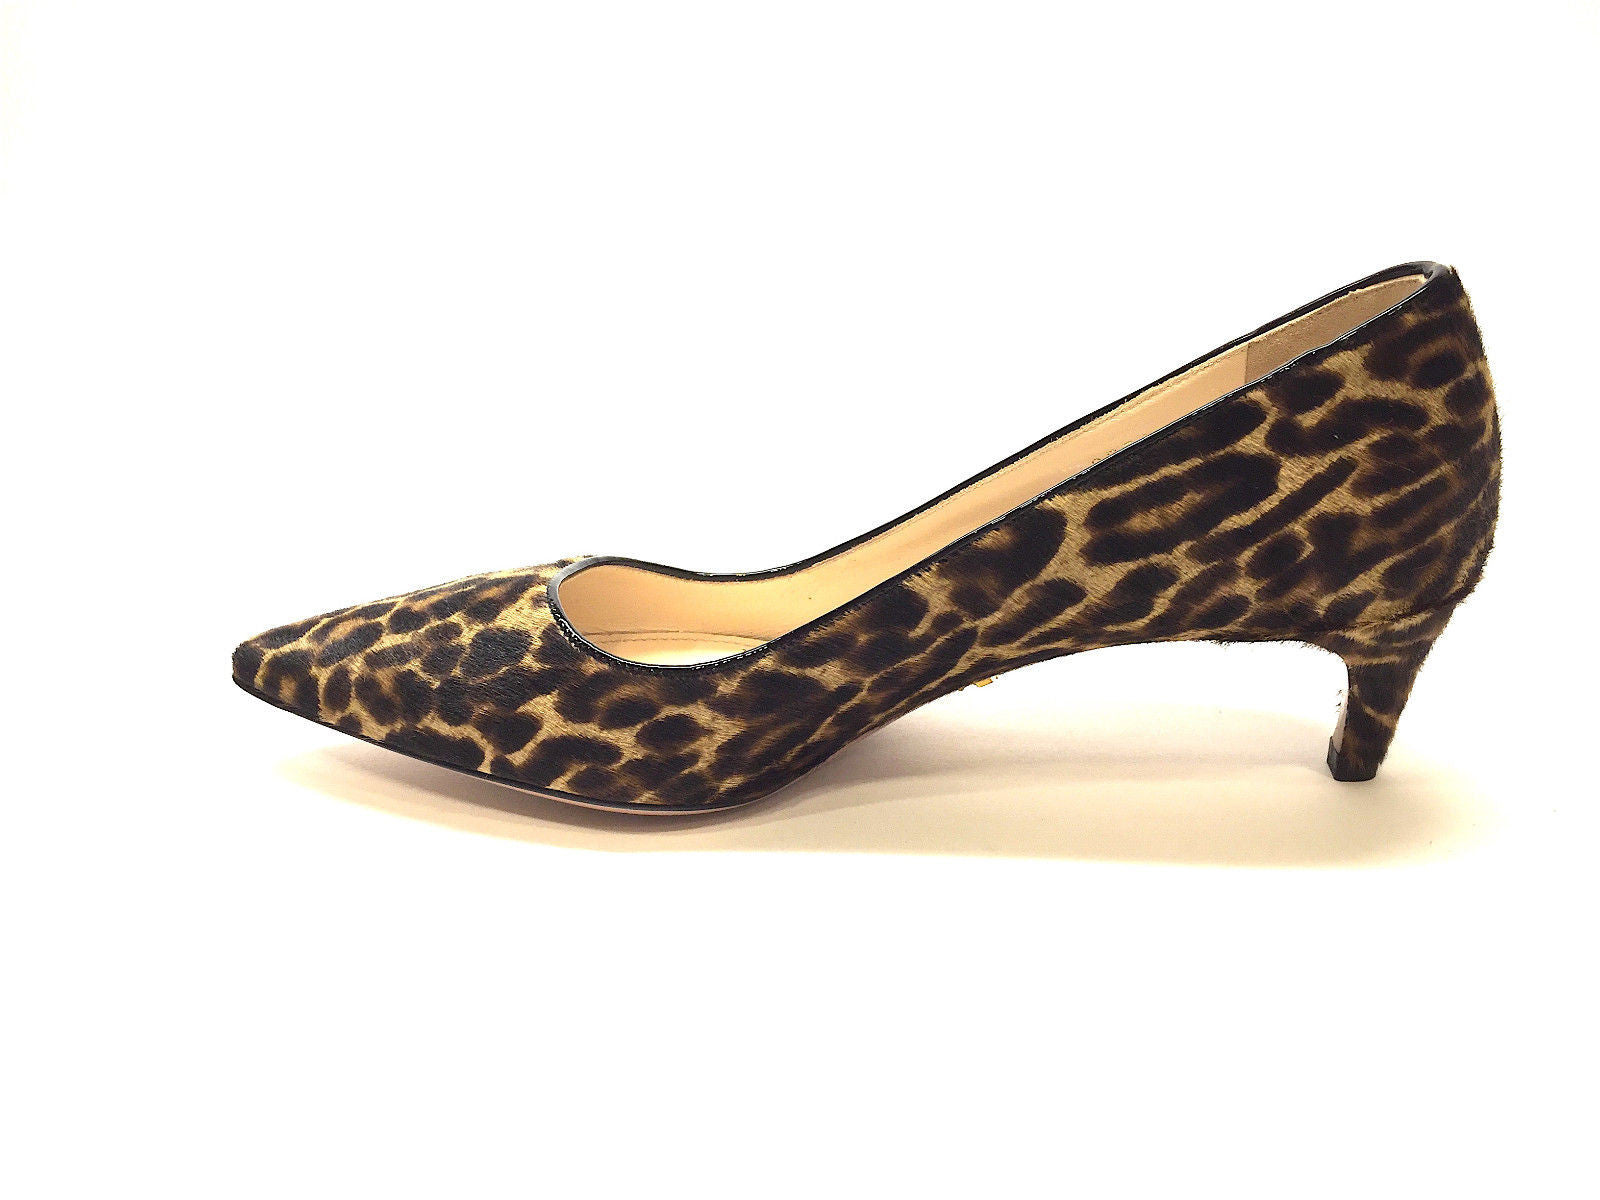 ... bisbiz.com PRADA Brown Tan Animal-Print Calf Hair Pointed Toe Kitten  Heel ...